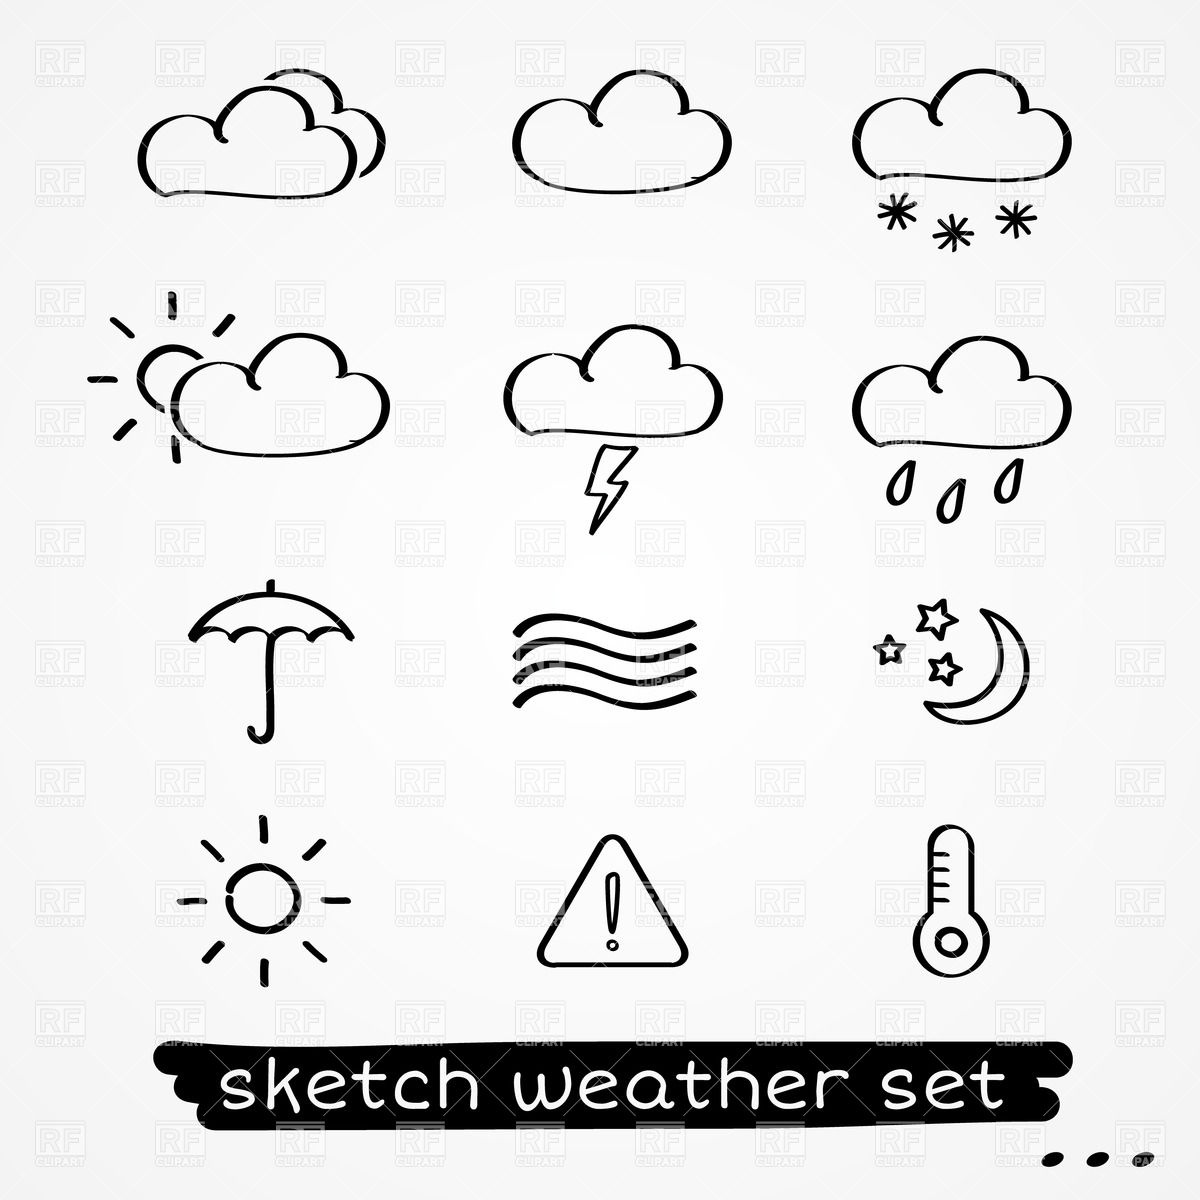 Weather forecast clipart black and white.